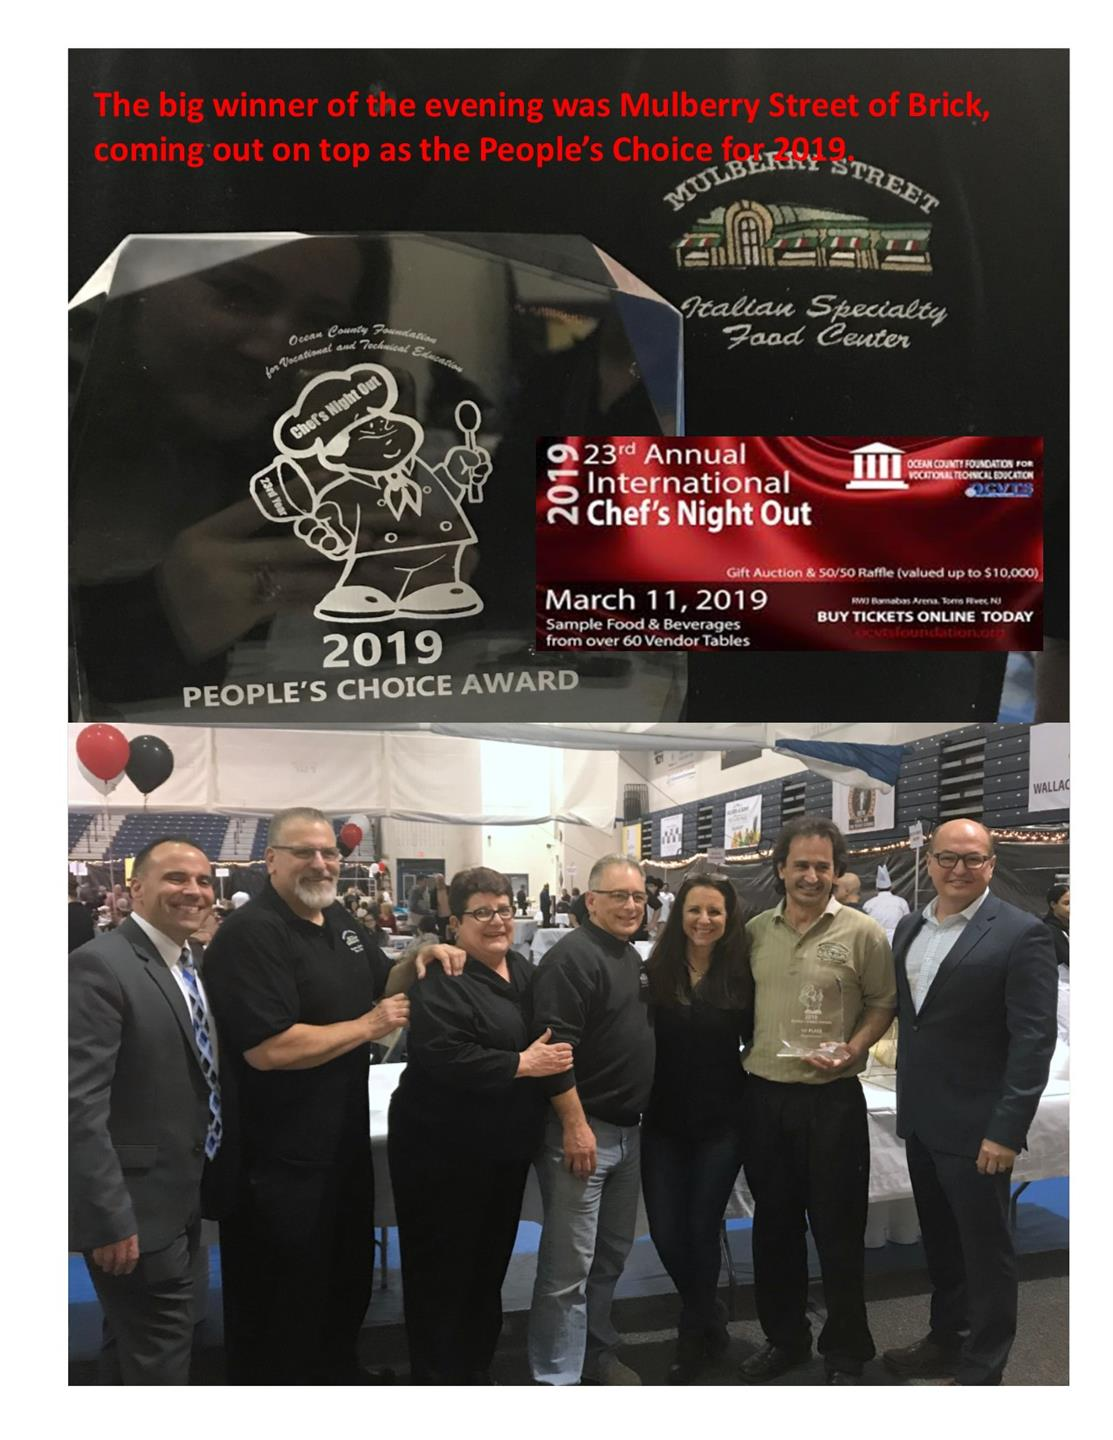 Award flyer. 2019 People's Choice Award. The big winner of the evening was Mulberry Street of Brick, coming out on top as the people's choice for 2019. 2019 23rd annual international chef's night out gift auction and 50-50 raffle, valued up to ten thousand dollars. March 11, 2019. Sample food and beverages from over 60 vendor tables.